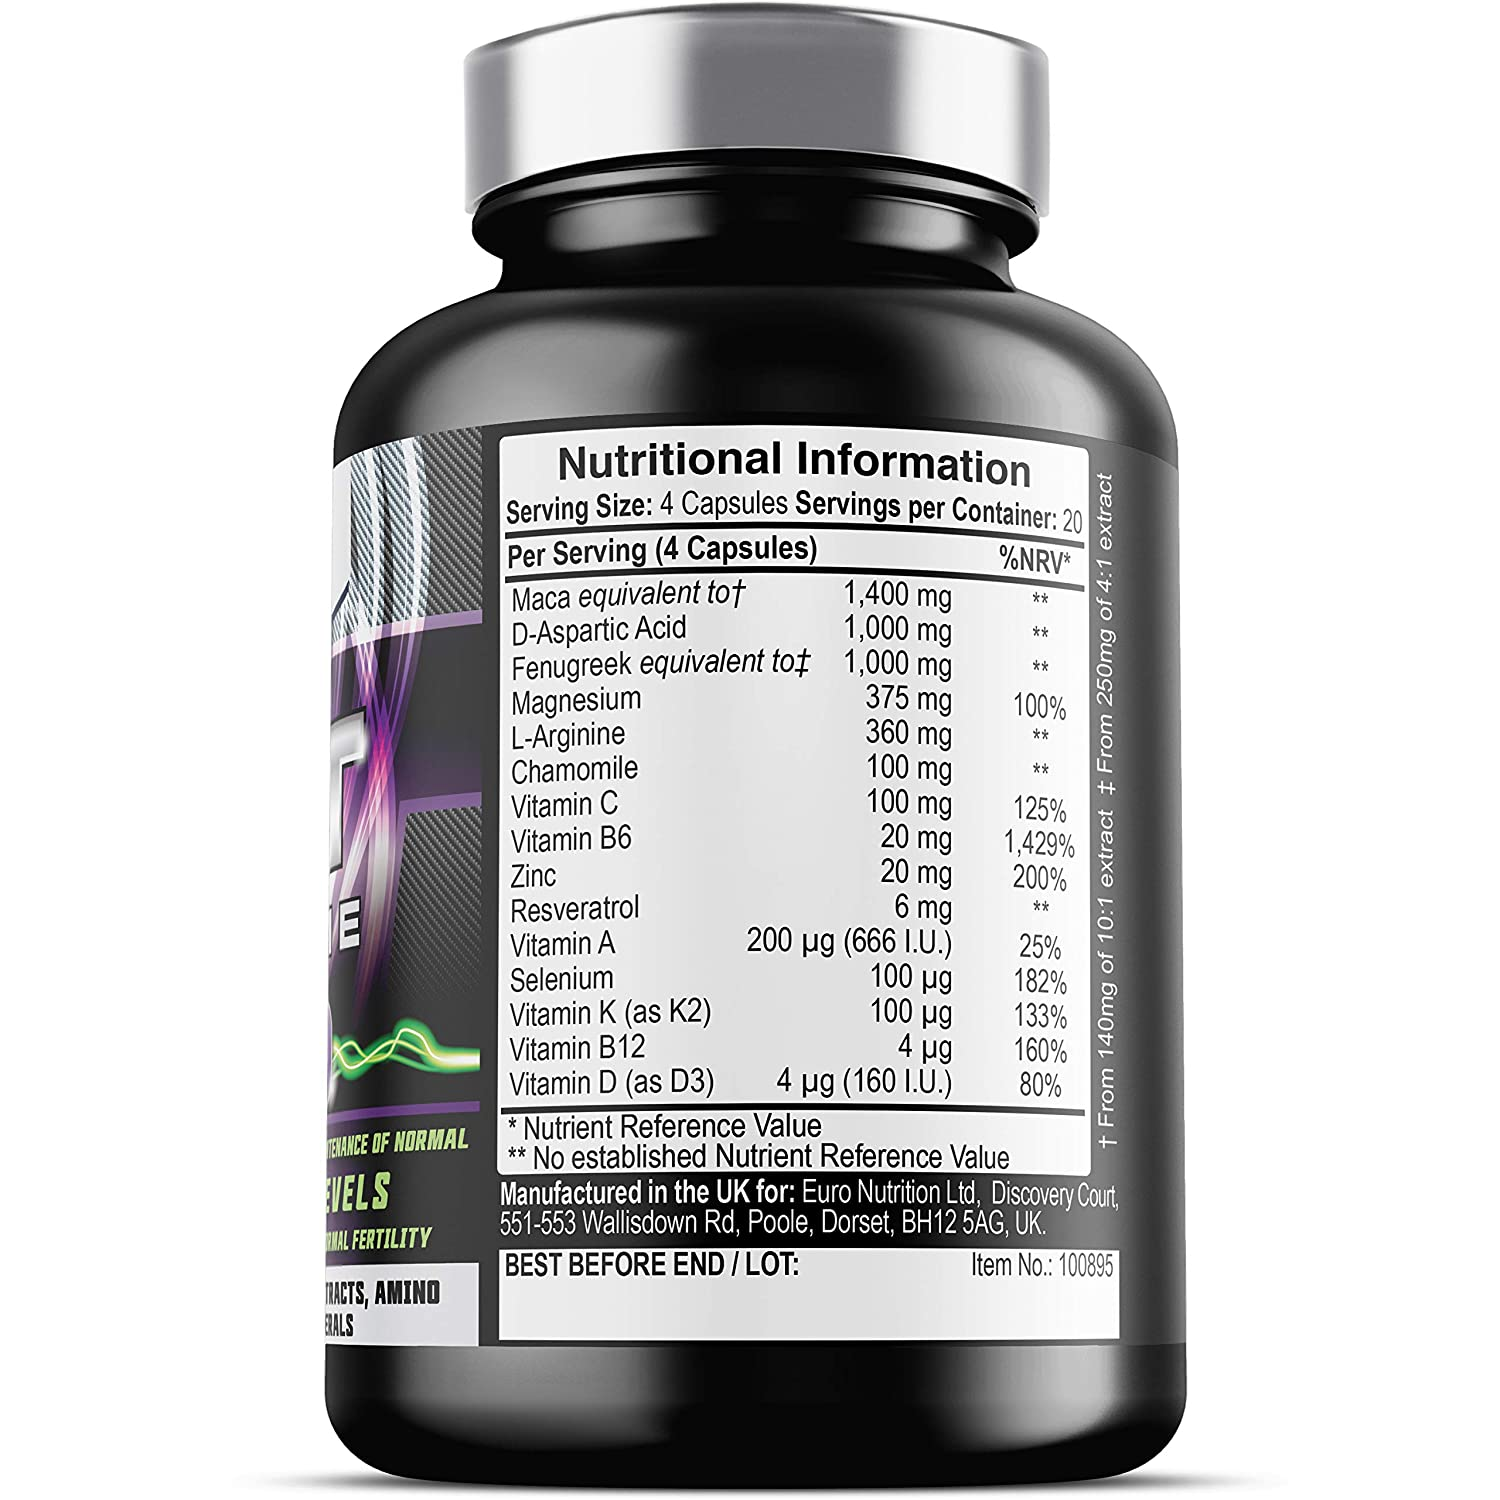 PCT Xtreme - 80 Capsules | Post Cycle Support supplement, with DAA,  Resveratrol & Zinc which contributes to Normal Testosterone Levels |  Exclusively